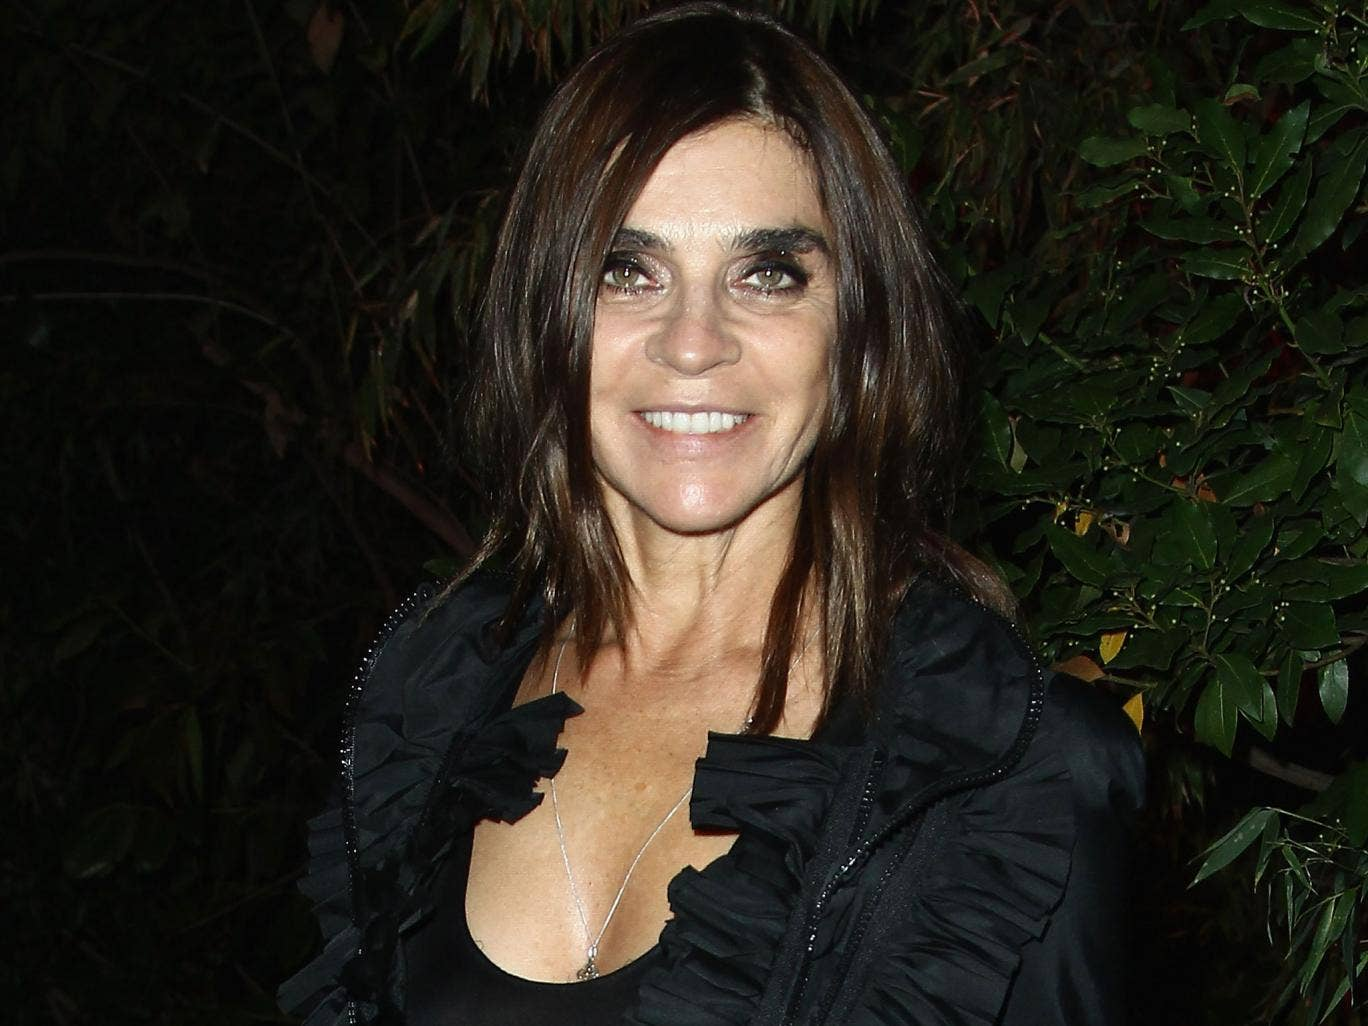 Carine Roitfeld explores her life in fashion in the film Mademoiselle C